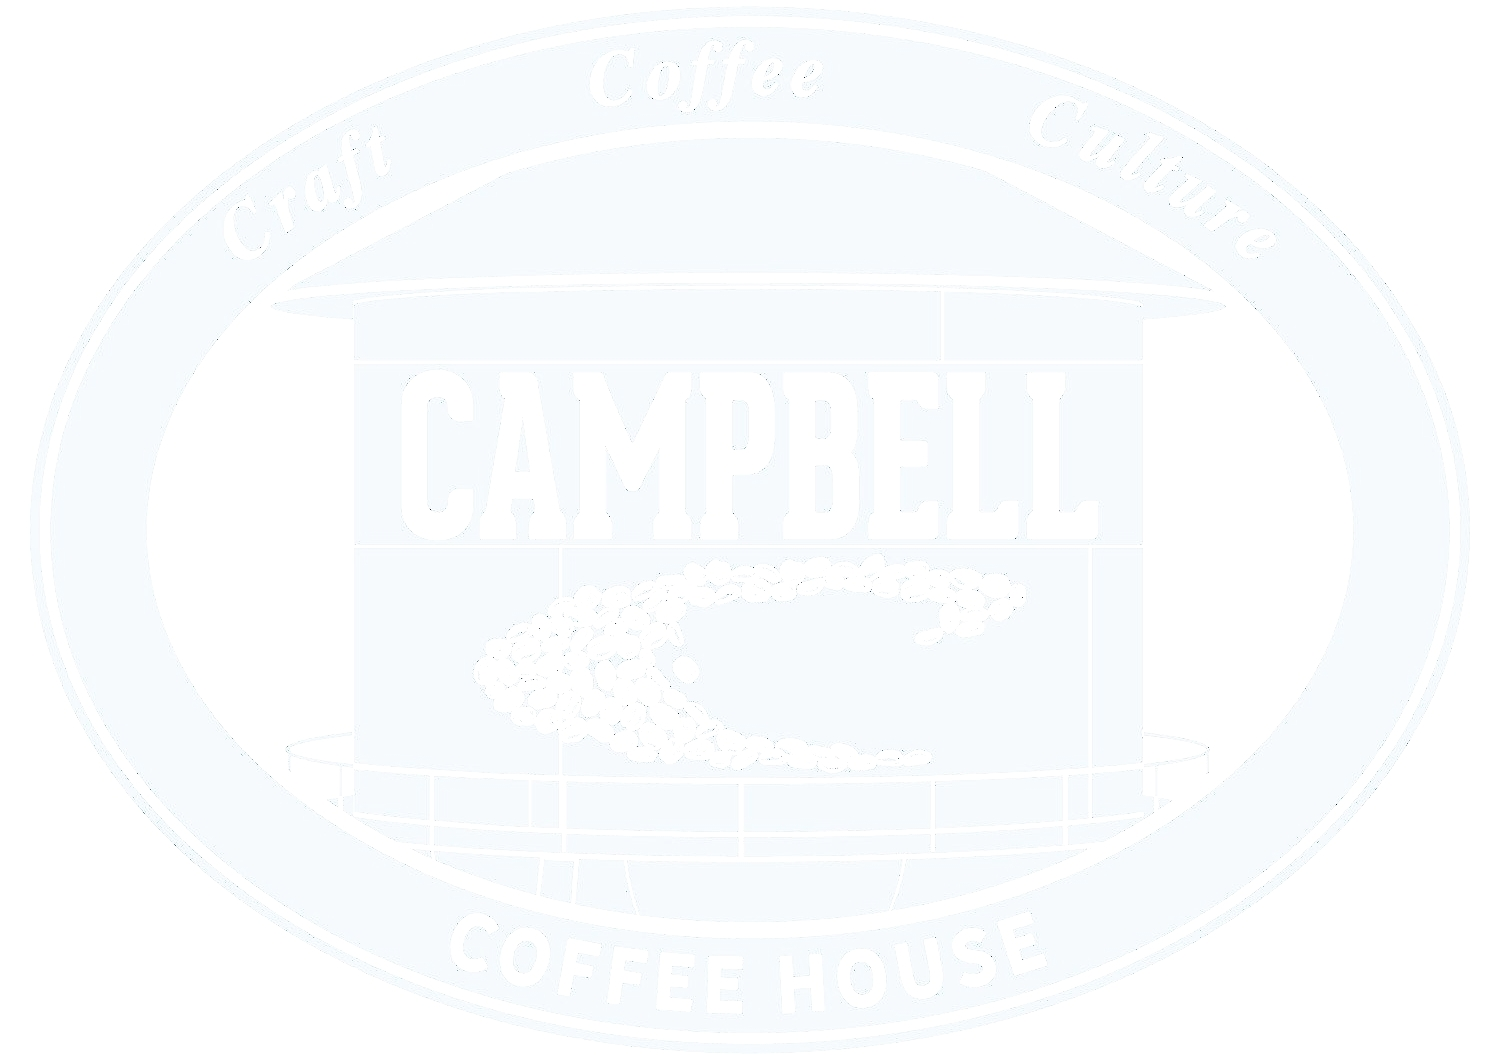 About us - Campbell Coffee House opened in November 2018. The vision = Create a space that balances both the need of being a parent and the desire of just being. Becoming the Bay's number one spot to hang out without a care - dine on delicious cuisine - and enjoy the company of those from all over the world. Ambiance:Campbell Coffee House interior reflects the hip sensibilities of the surrounding area while also accommodating families with small children. By focusing on sustainability and balance, our attention to detail creates the perfect space to grow up in.Why We Differ - Infant/Toddler Enrichment that focuses on Parental ResilienceWe have formed a specialized membership program that does what memberships are created to do. Supply ample perks to its members. Our program is unique because it provides enriching programs that actually make a difference. To us, Parents come first. It's that simple. Click here to find out more.